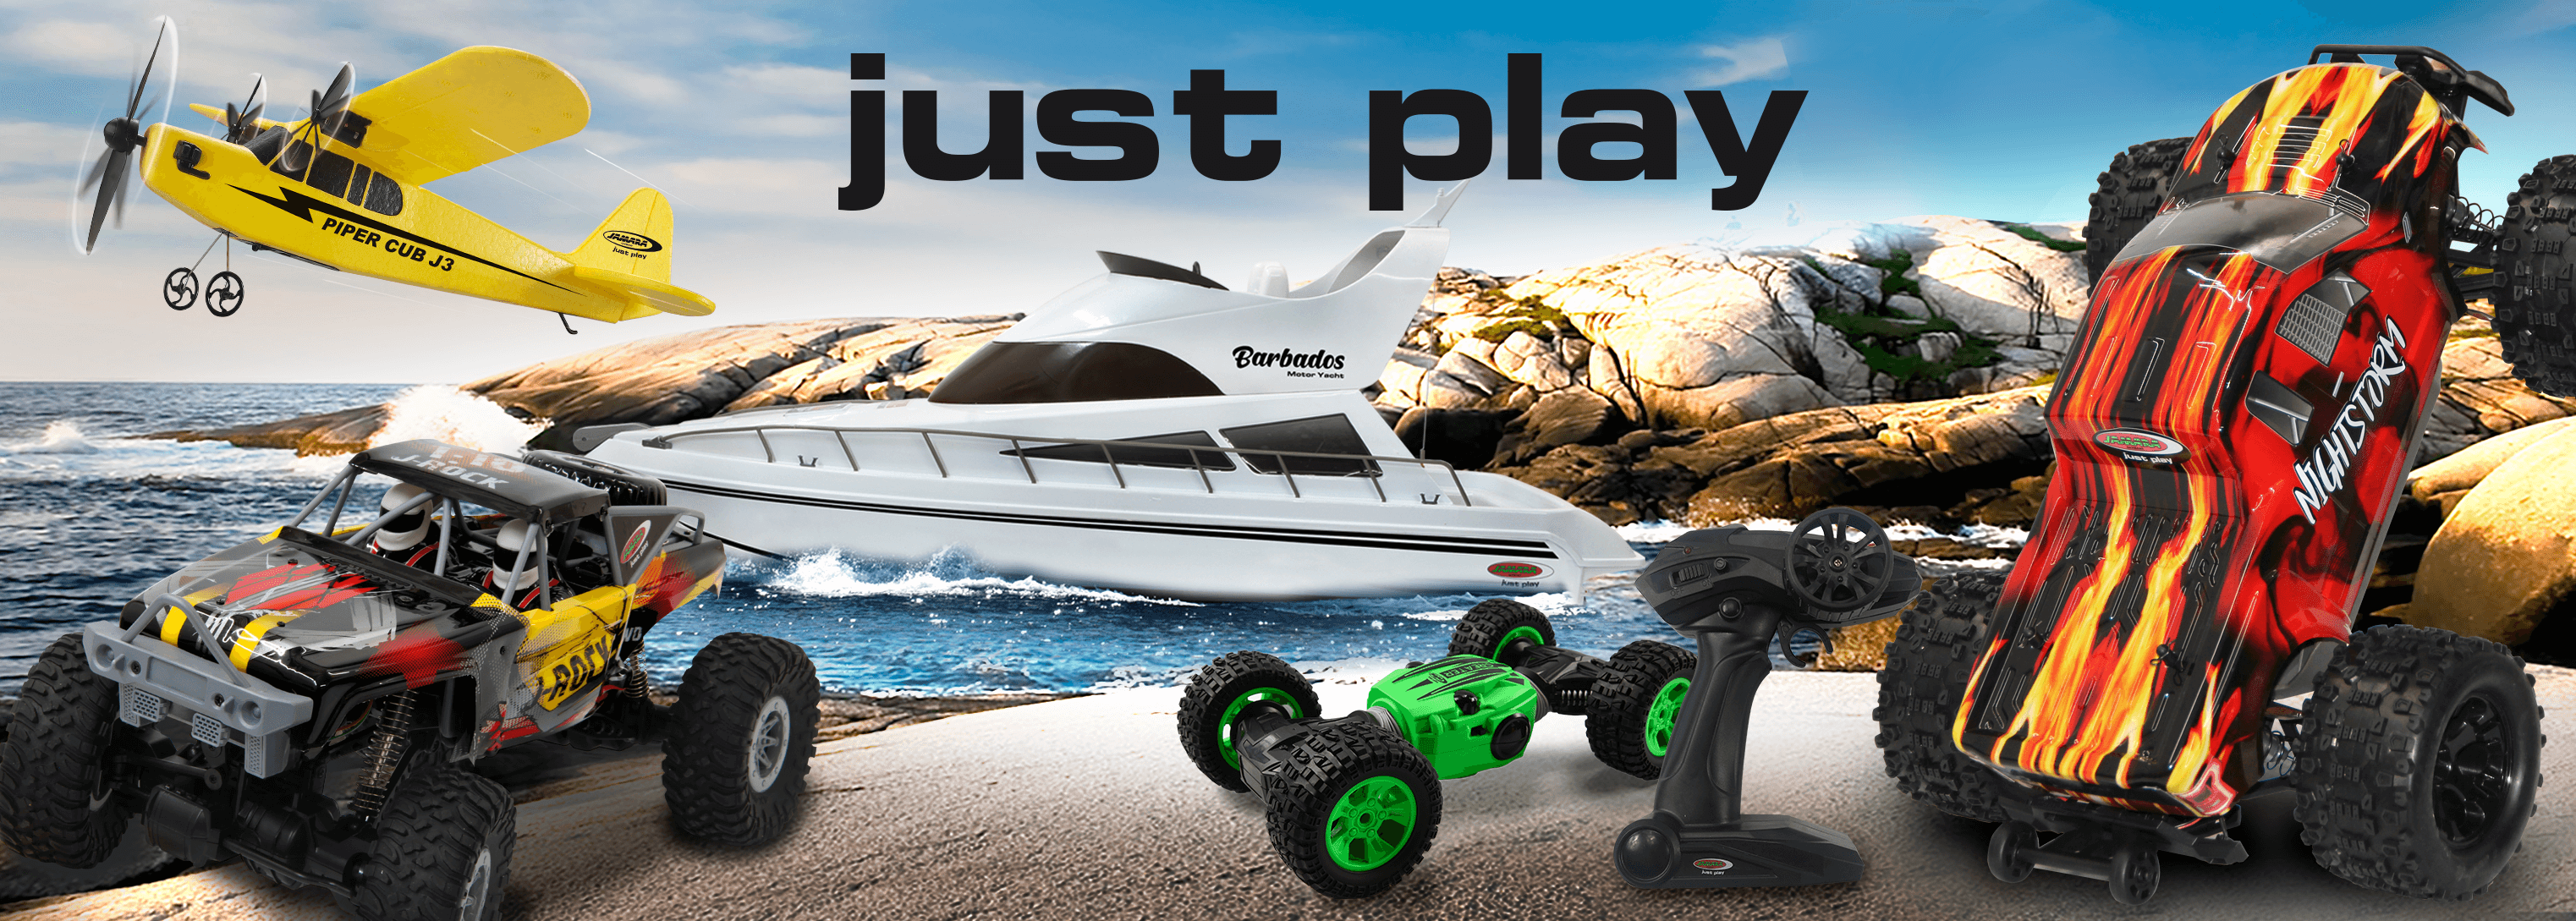 Jamara RC Models - The ultimate fun for adults and children or young and old